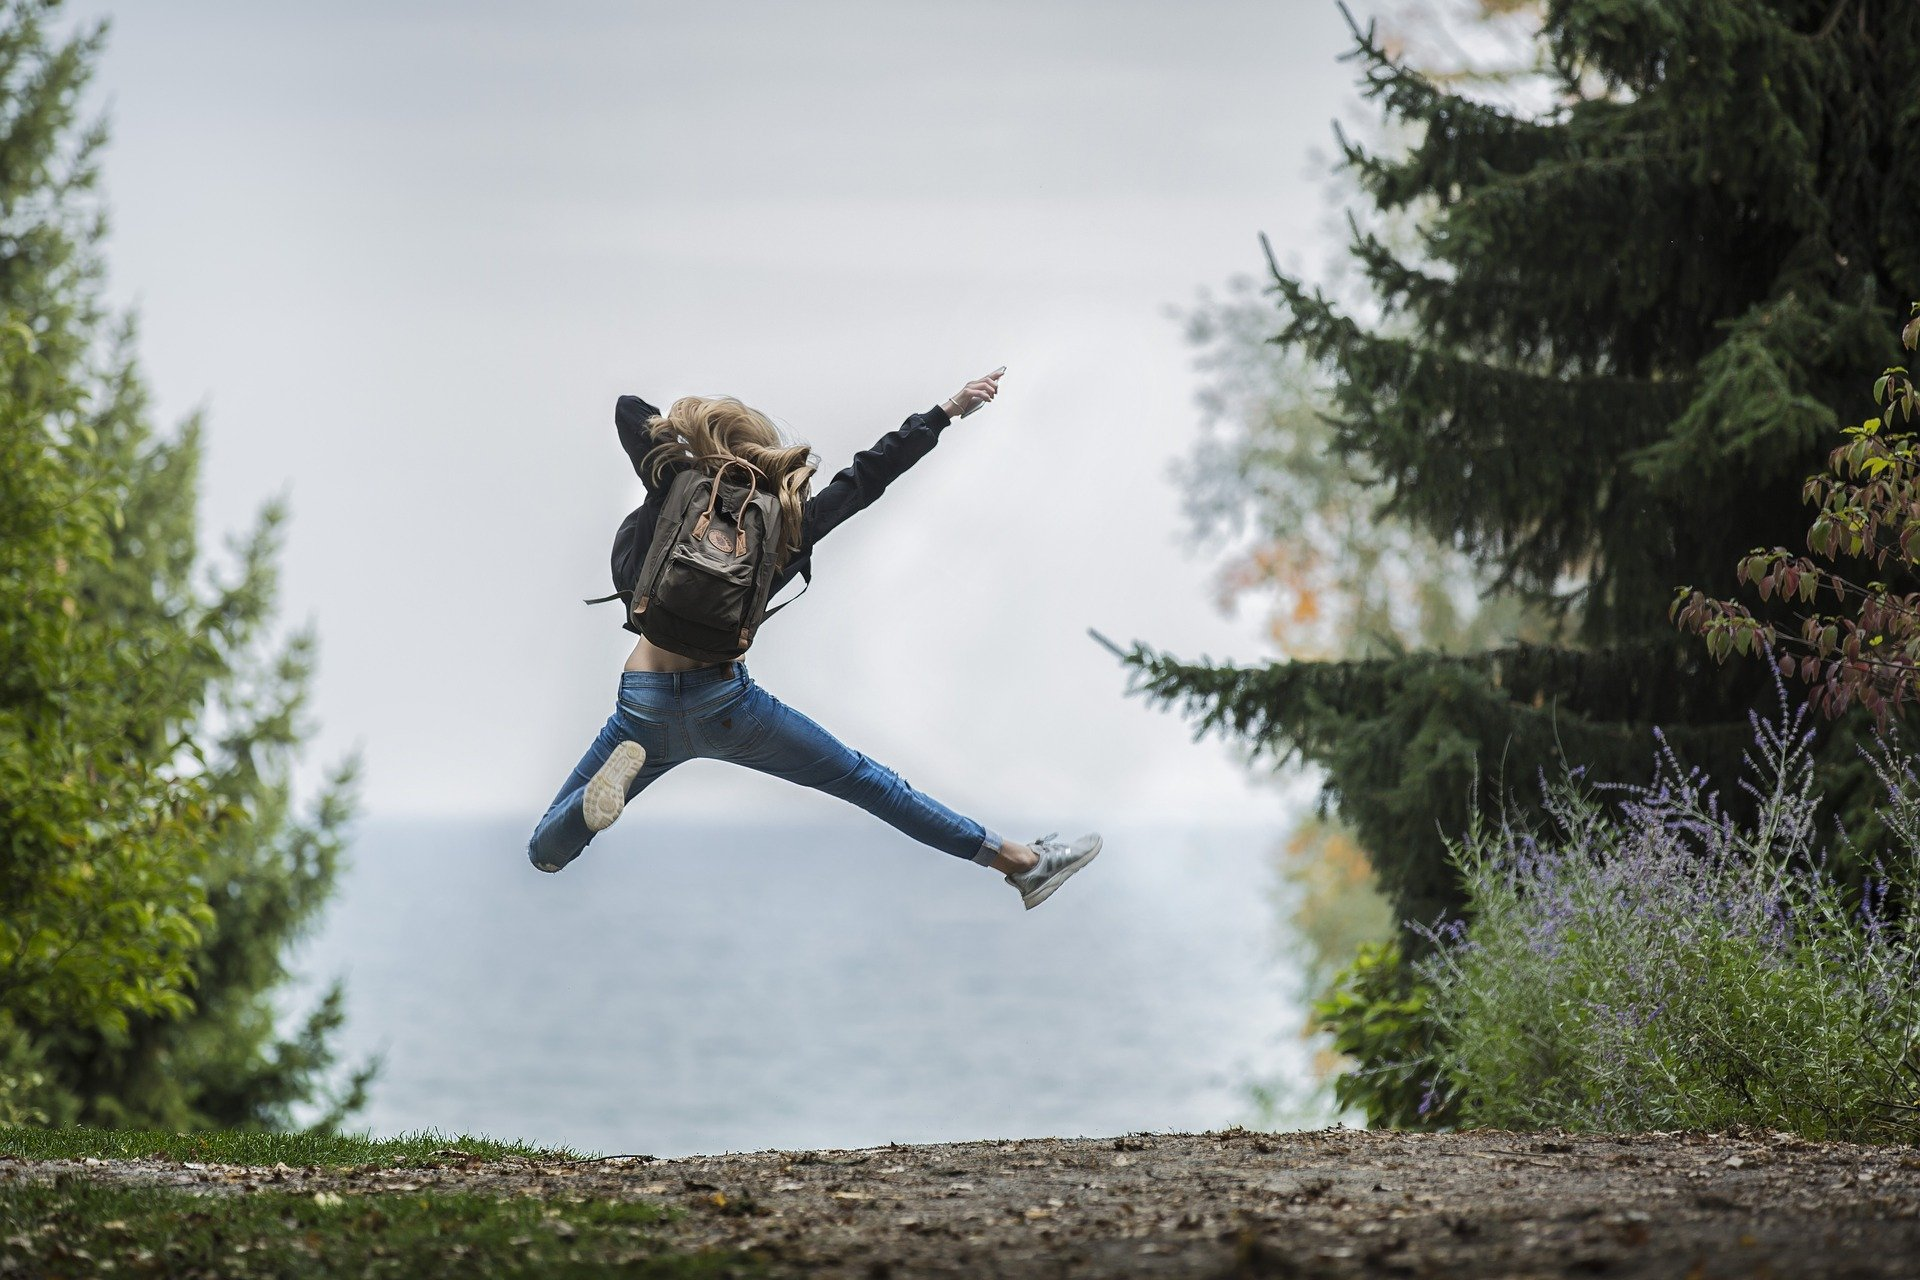 decorative, a person jumping